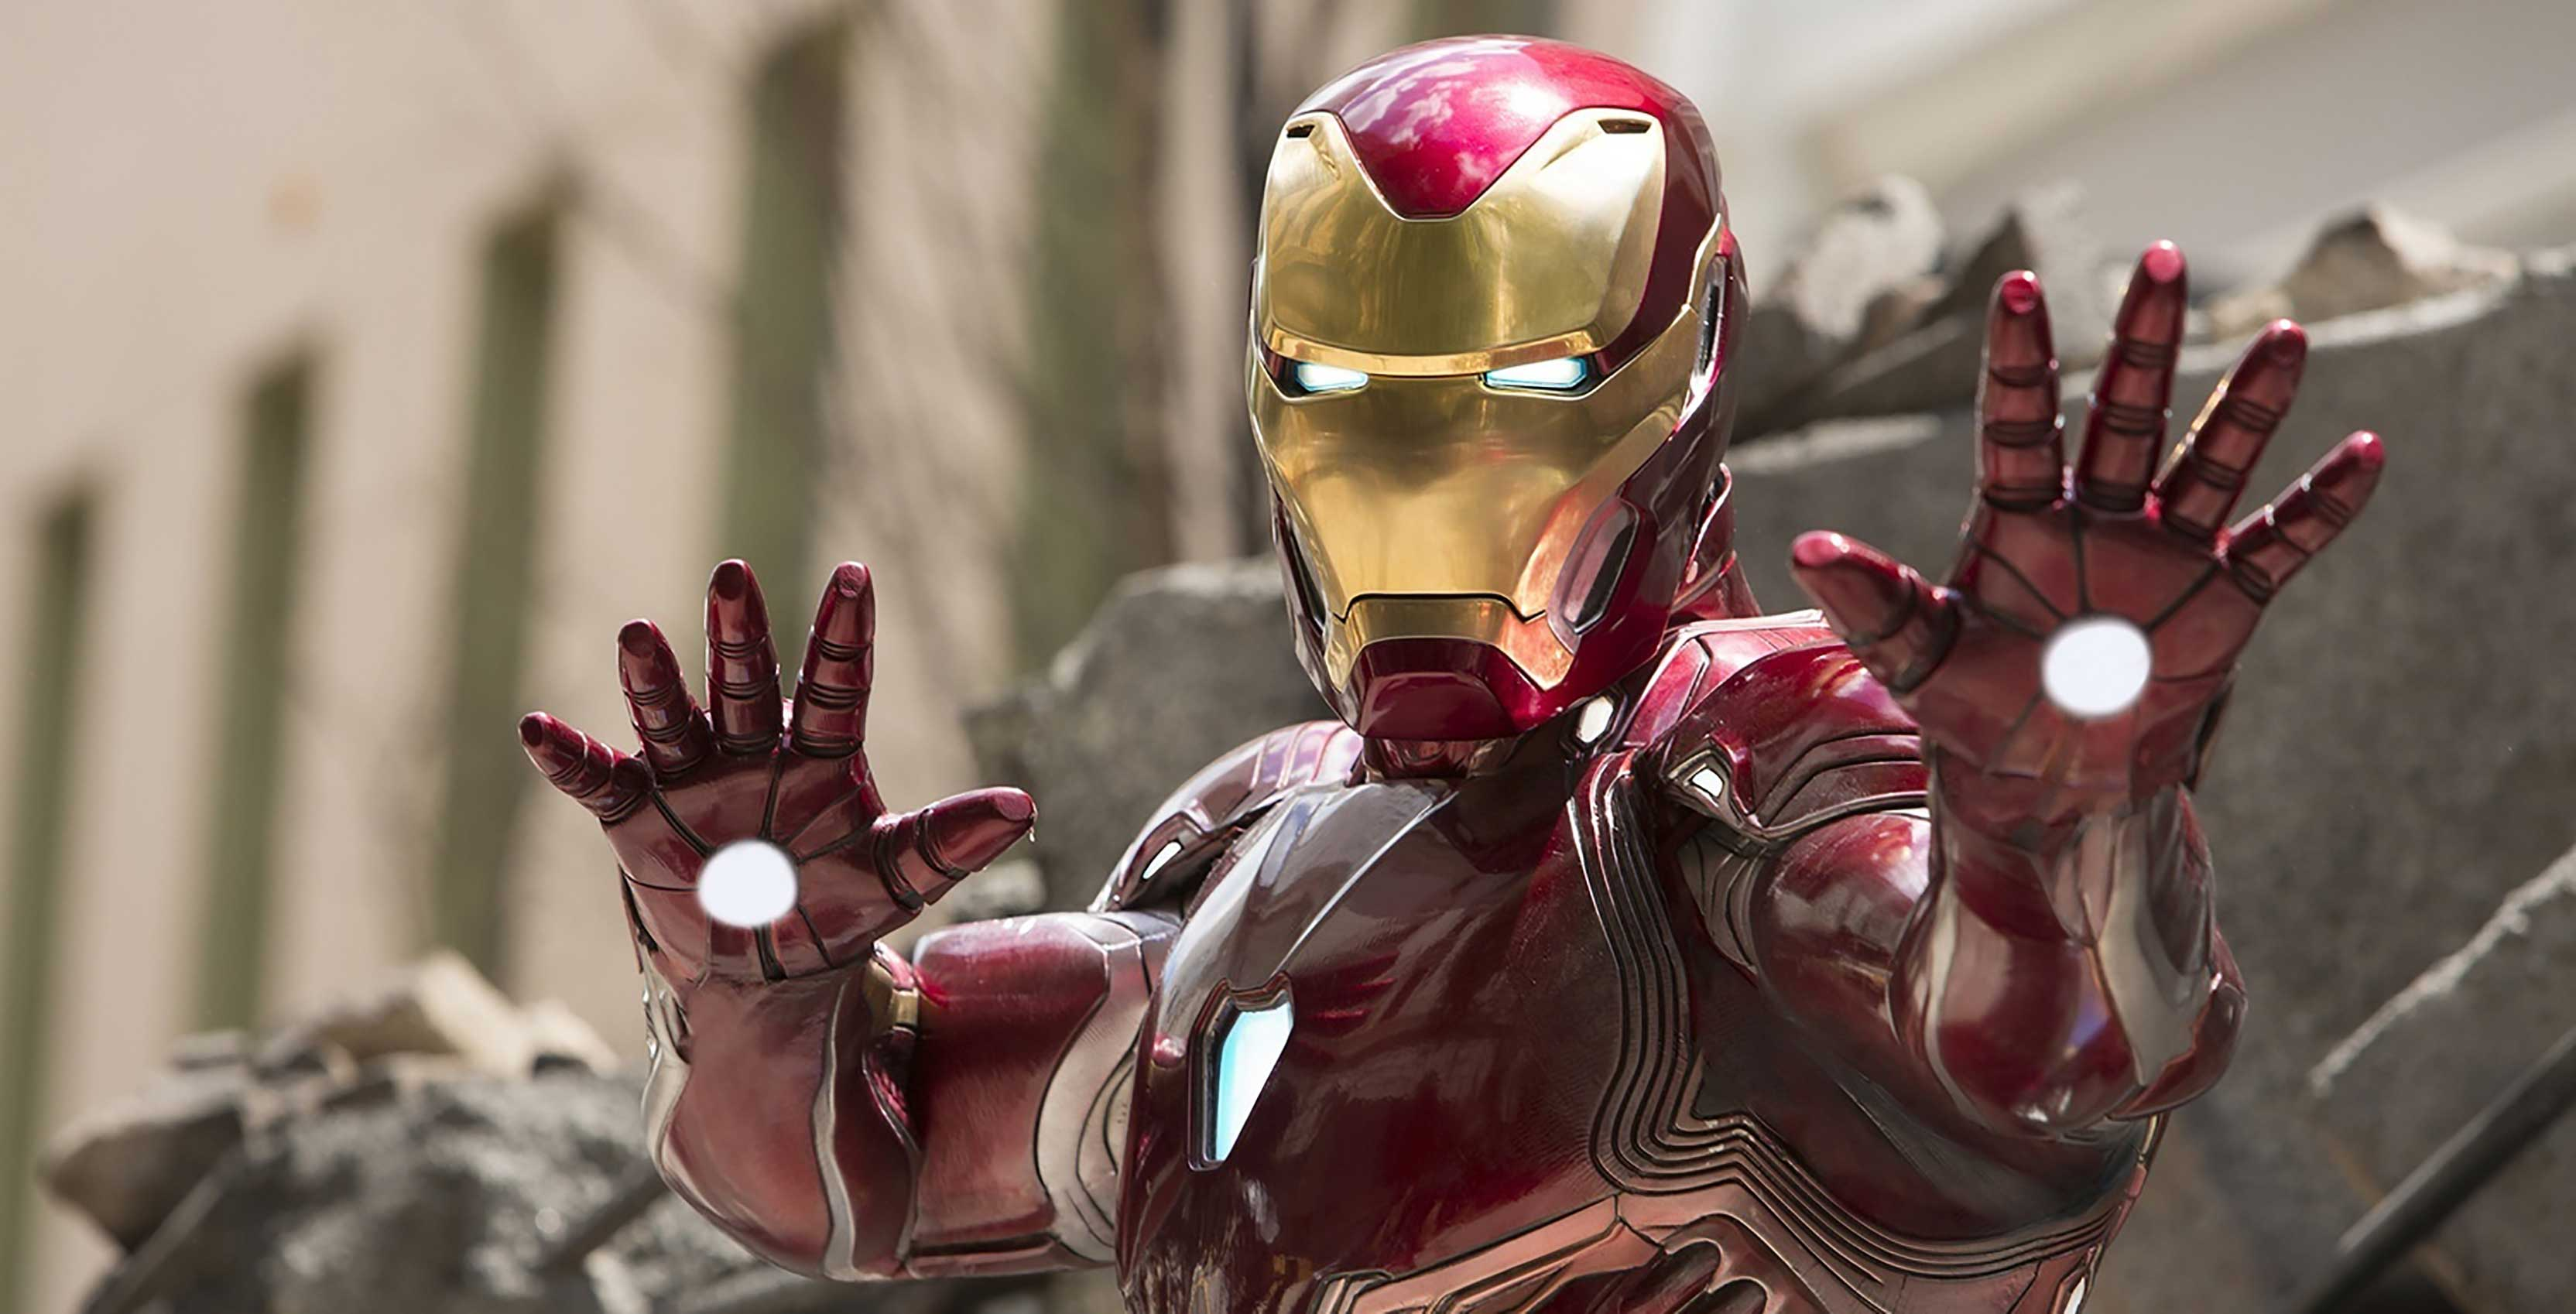 Become an Avenger with this real life Iron Man suit [Sticky or Not]